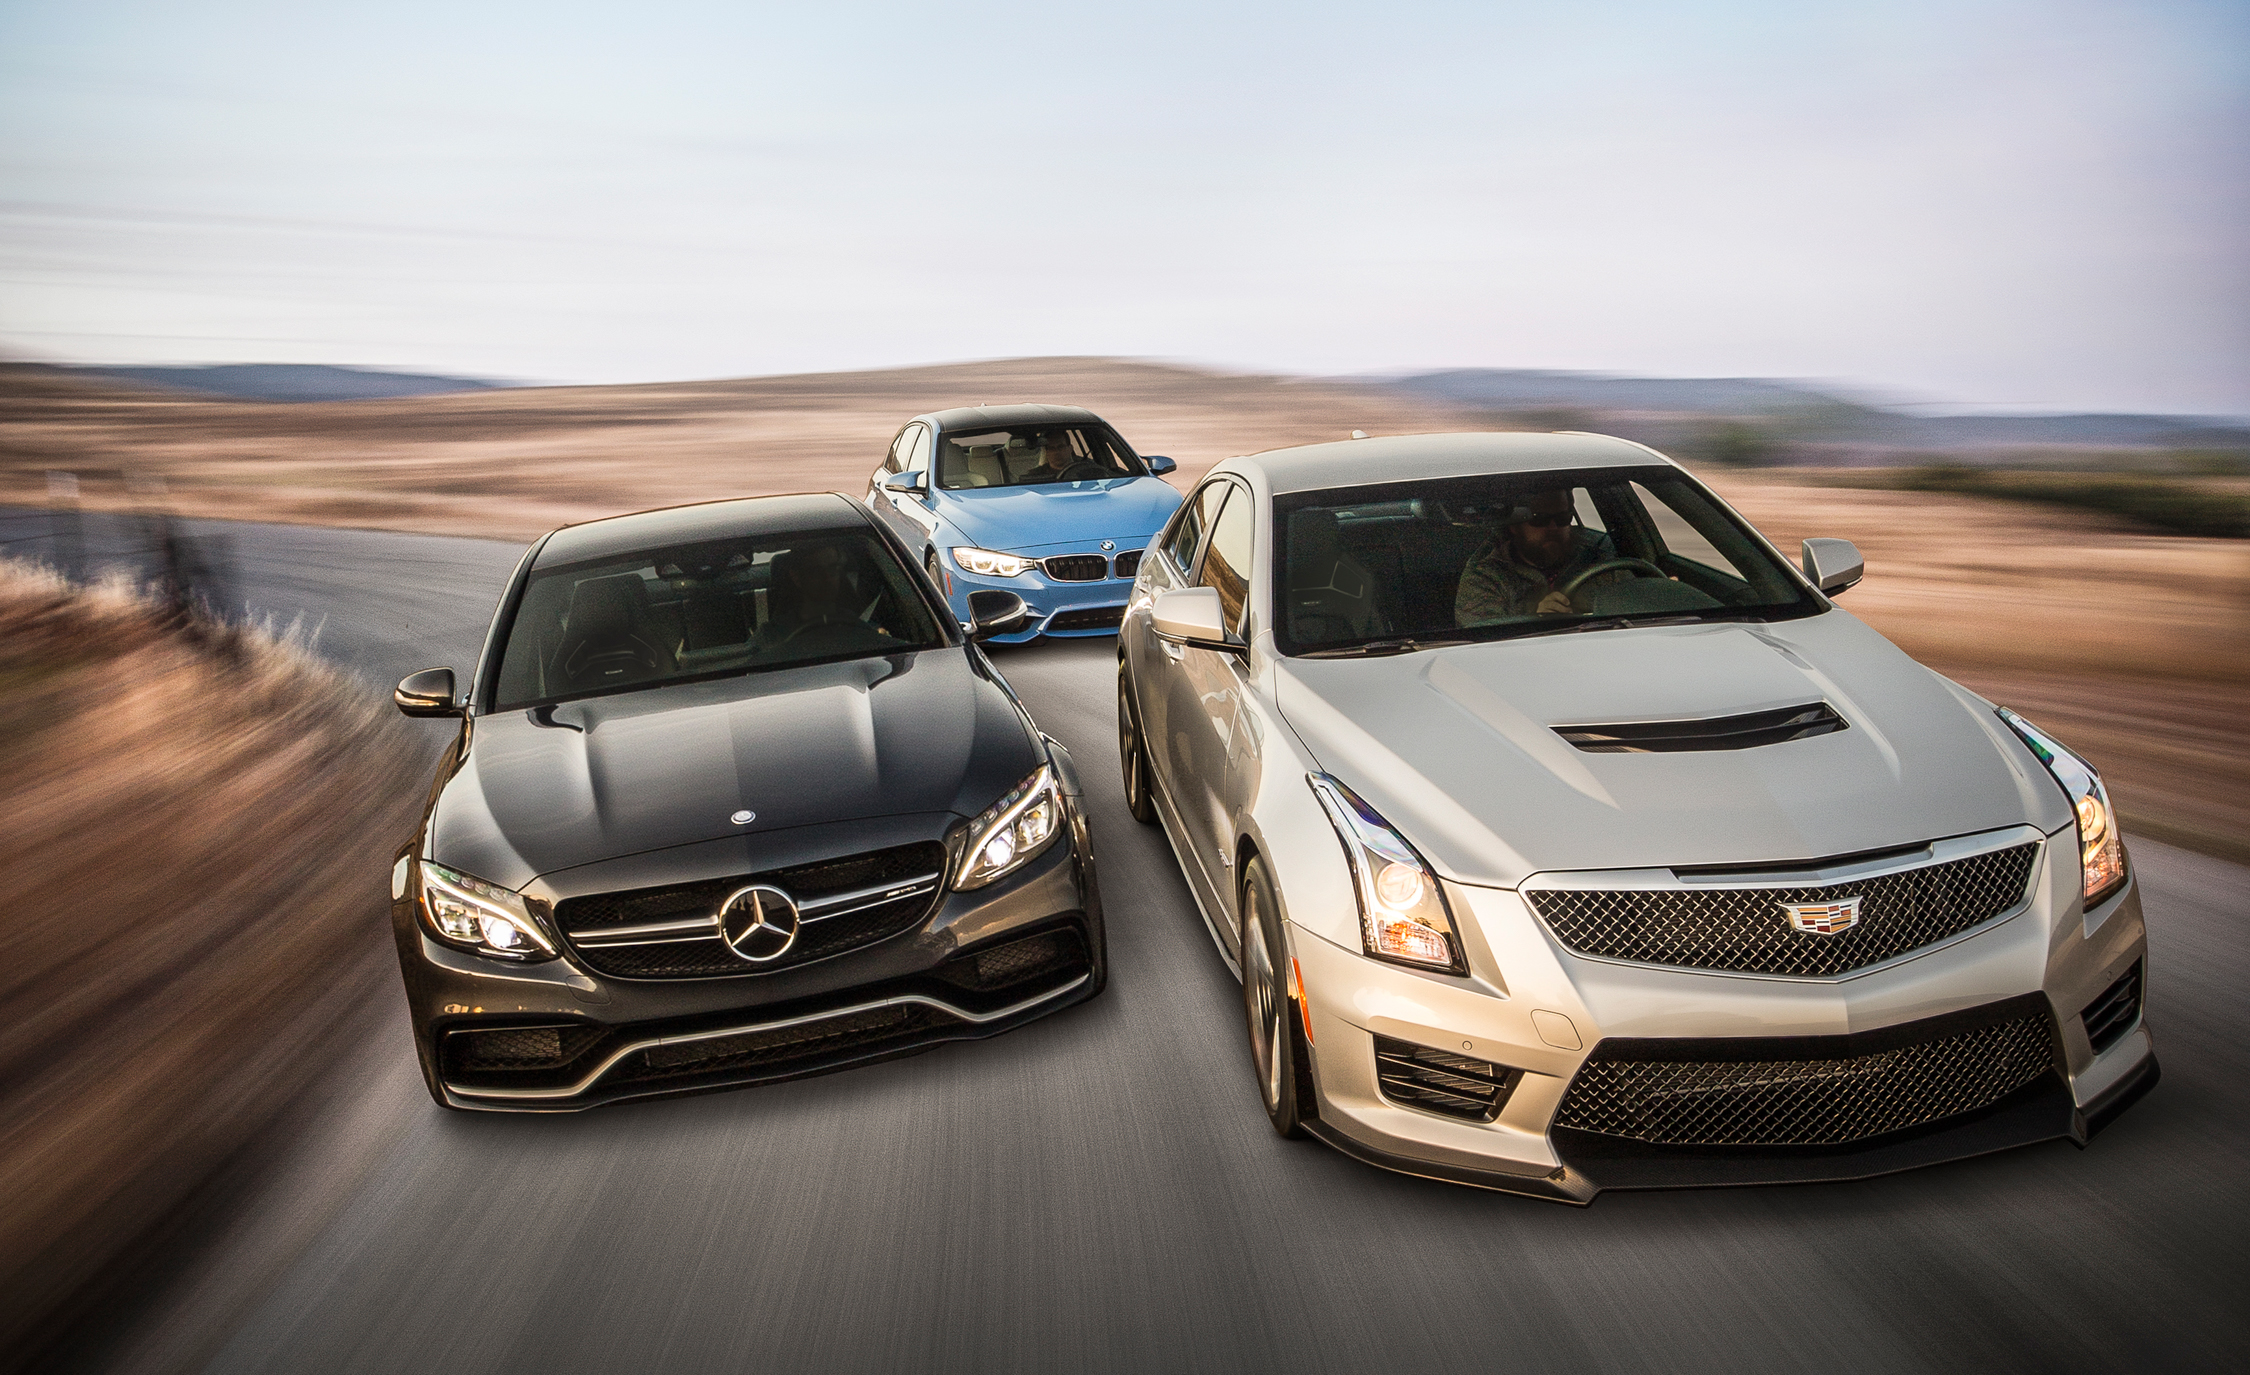 The Battle of 2015 BMW M3 vs. 2015 Mercedes-AMG C63 S, 2016 Cadillac ATS-V